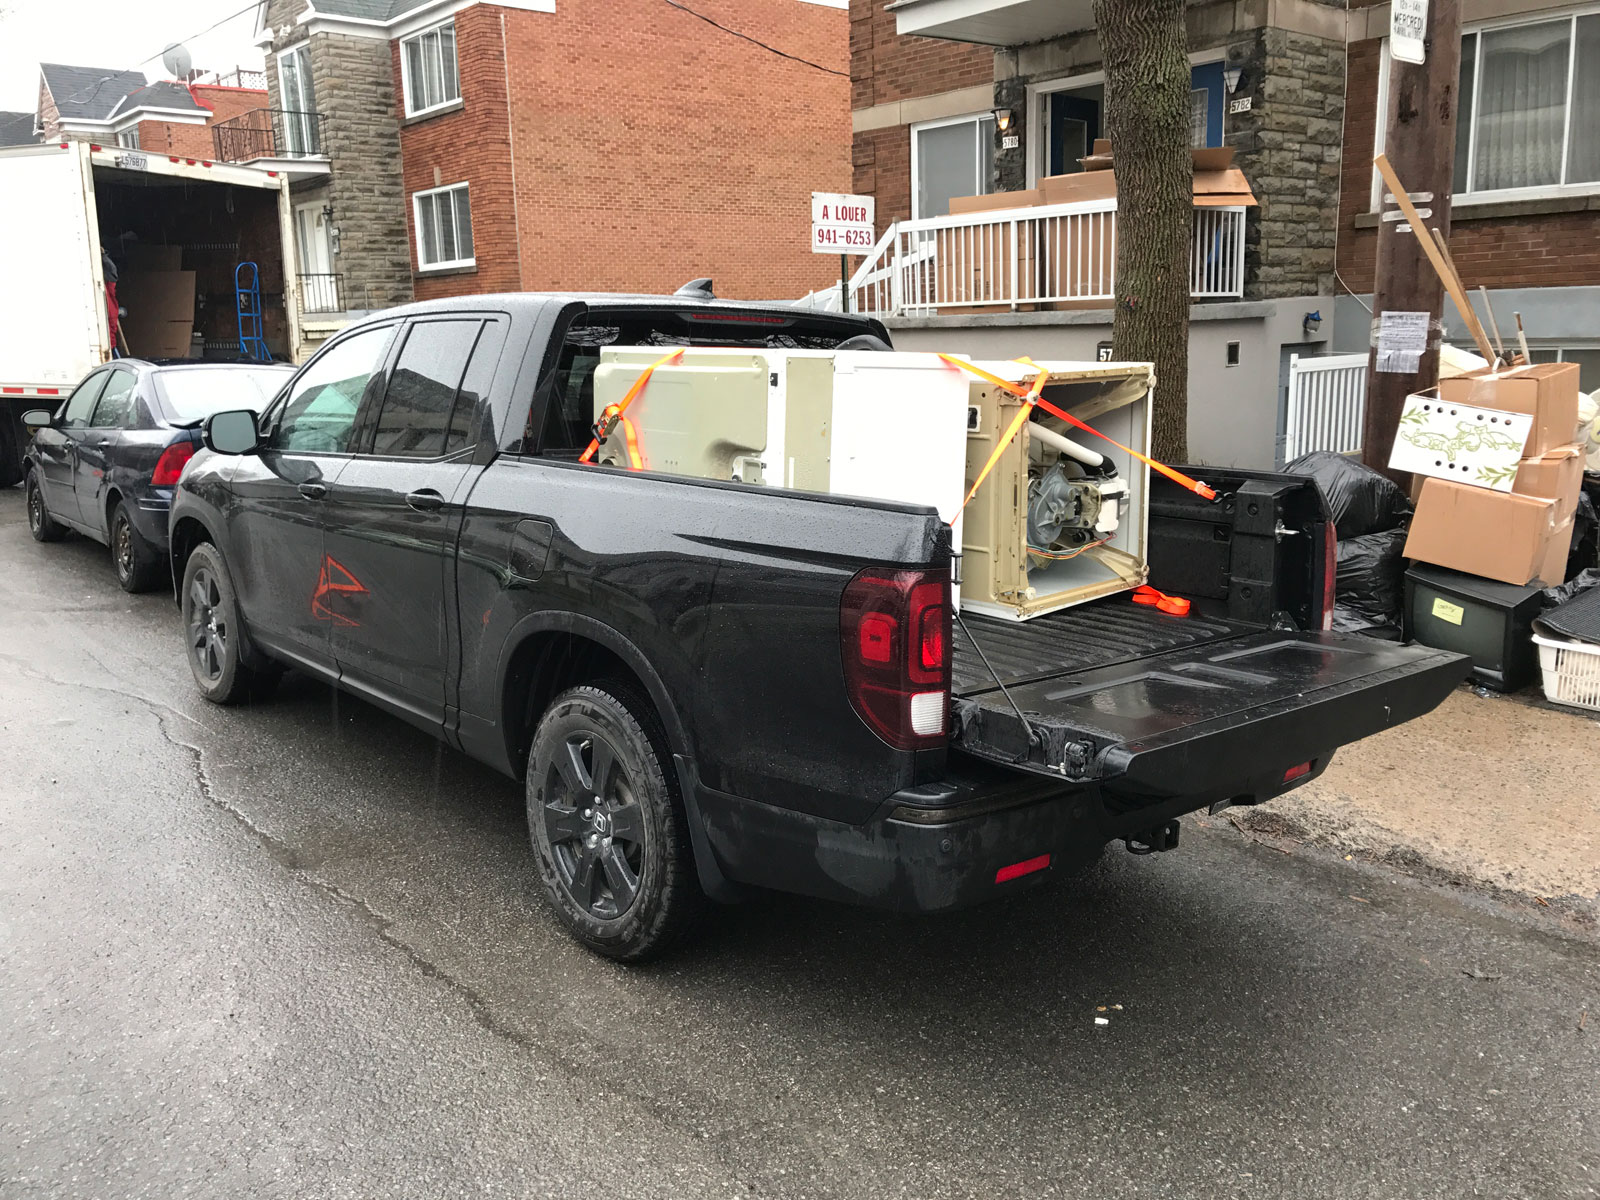 Road Test 2017 Honda Ridgeline Black Edition Trailer Hitch Wiring Under The Hood Is Hondas 35 Liter I Vtecv 6 Engine Mated To A Speed Automatic Transmission Output Rated At 280 Horsepower And 262 Lb Ft Of